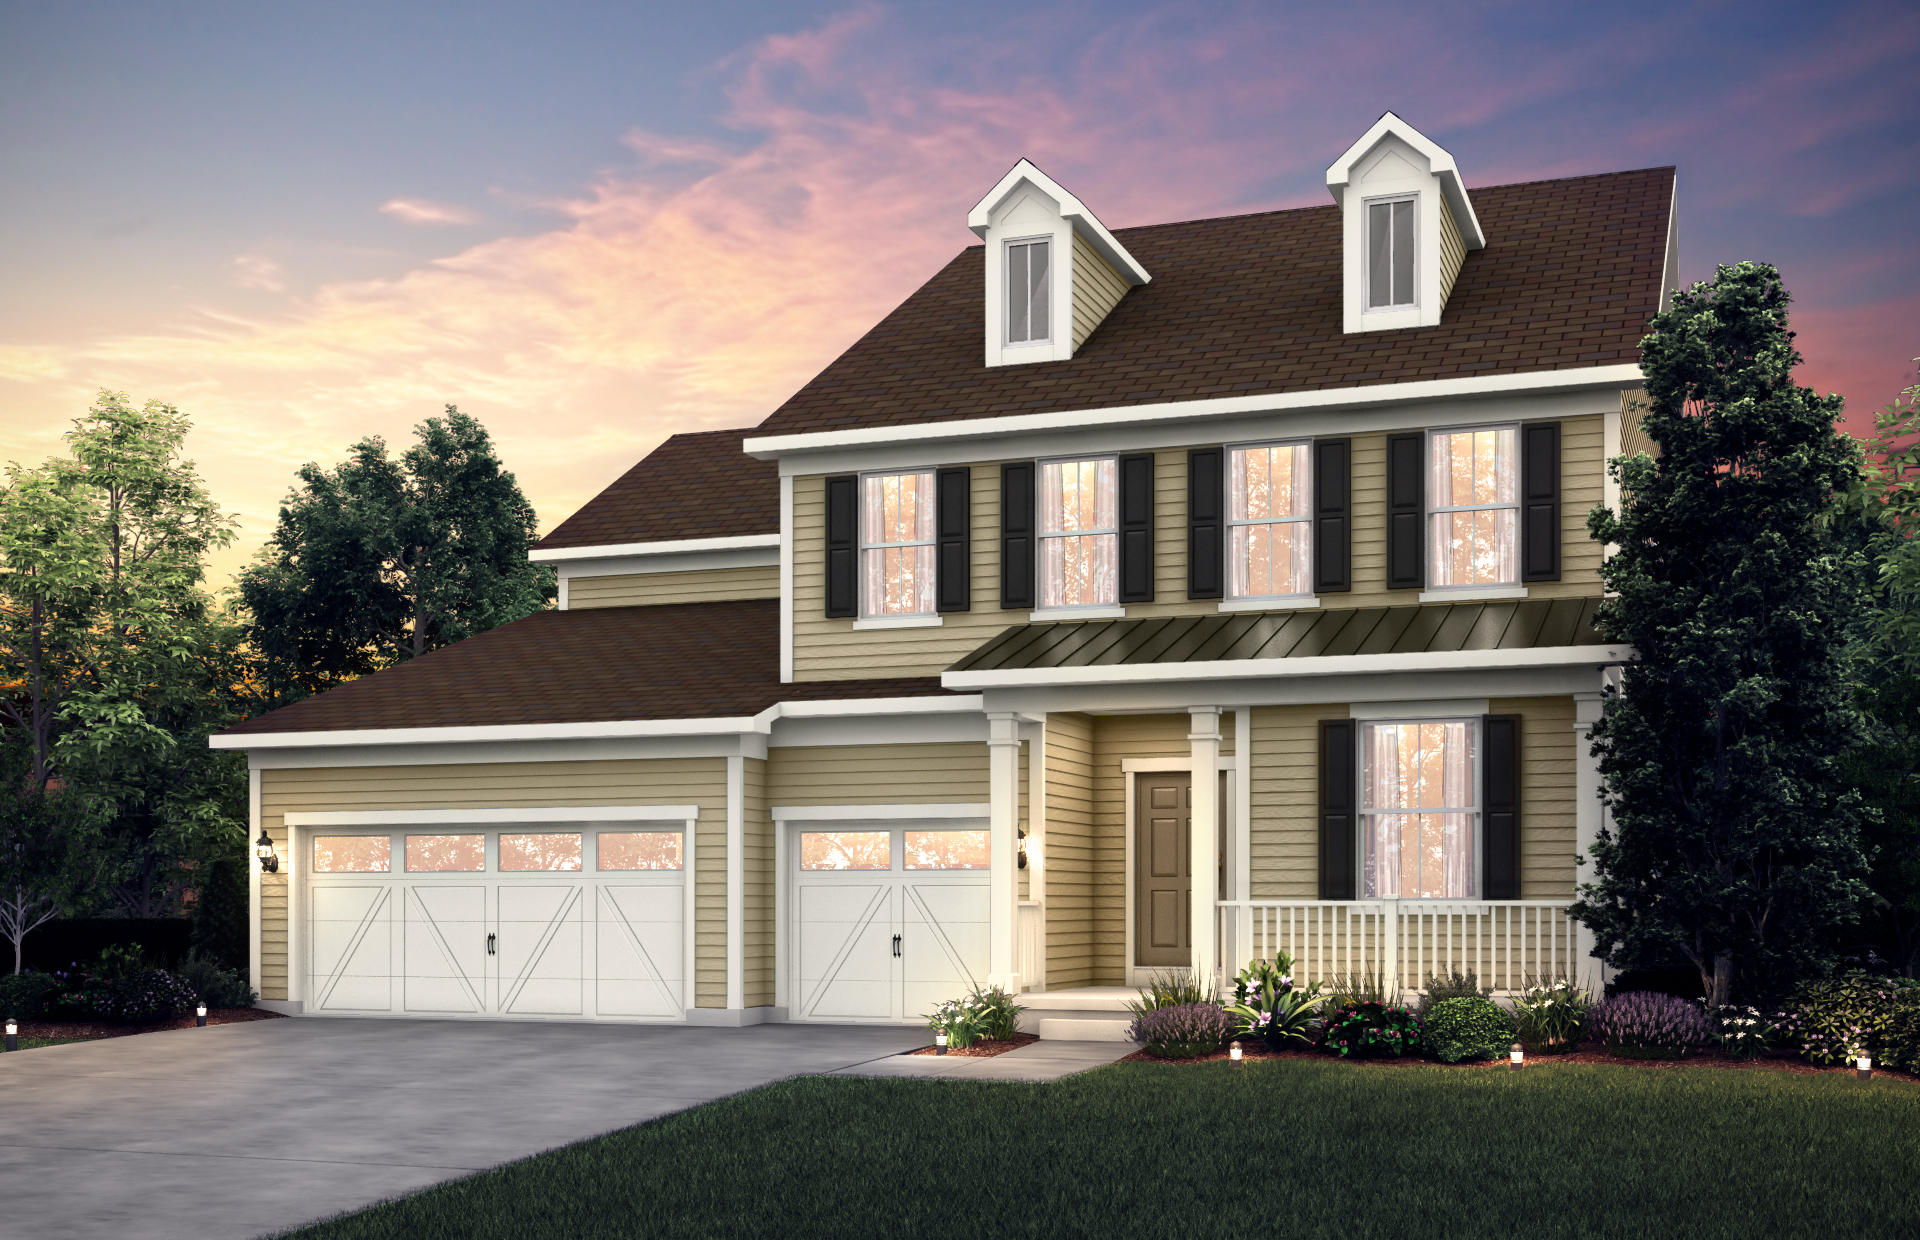 Finley Park by Pulte Homes image 2